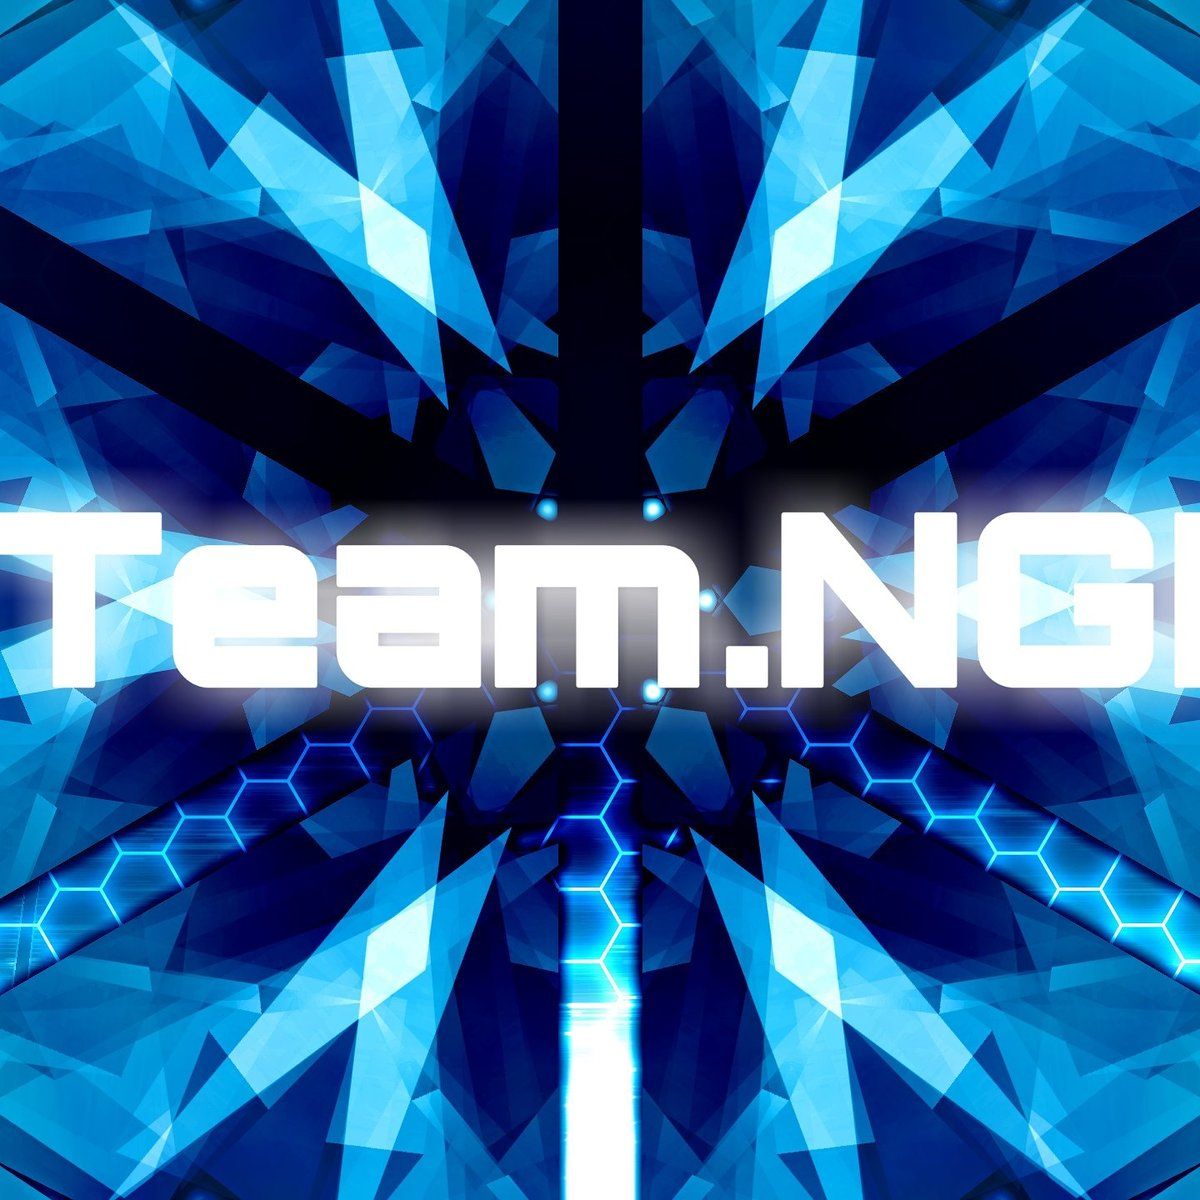 Welcome to team.ngi  #fortniteclips #fortnite #fn #clips #twitch #clan #new #tryouts #streamer #need #members #videopic.twitter.com/kGVIovqo8H